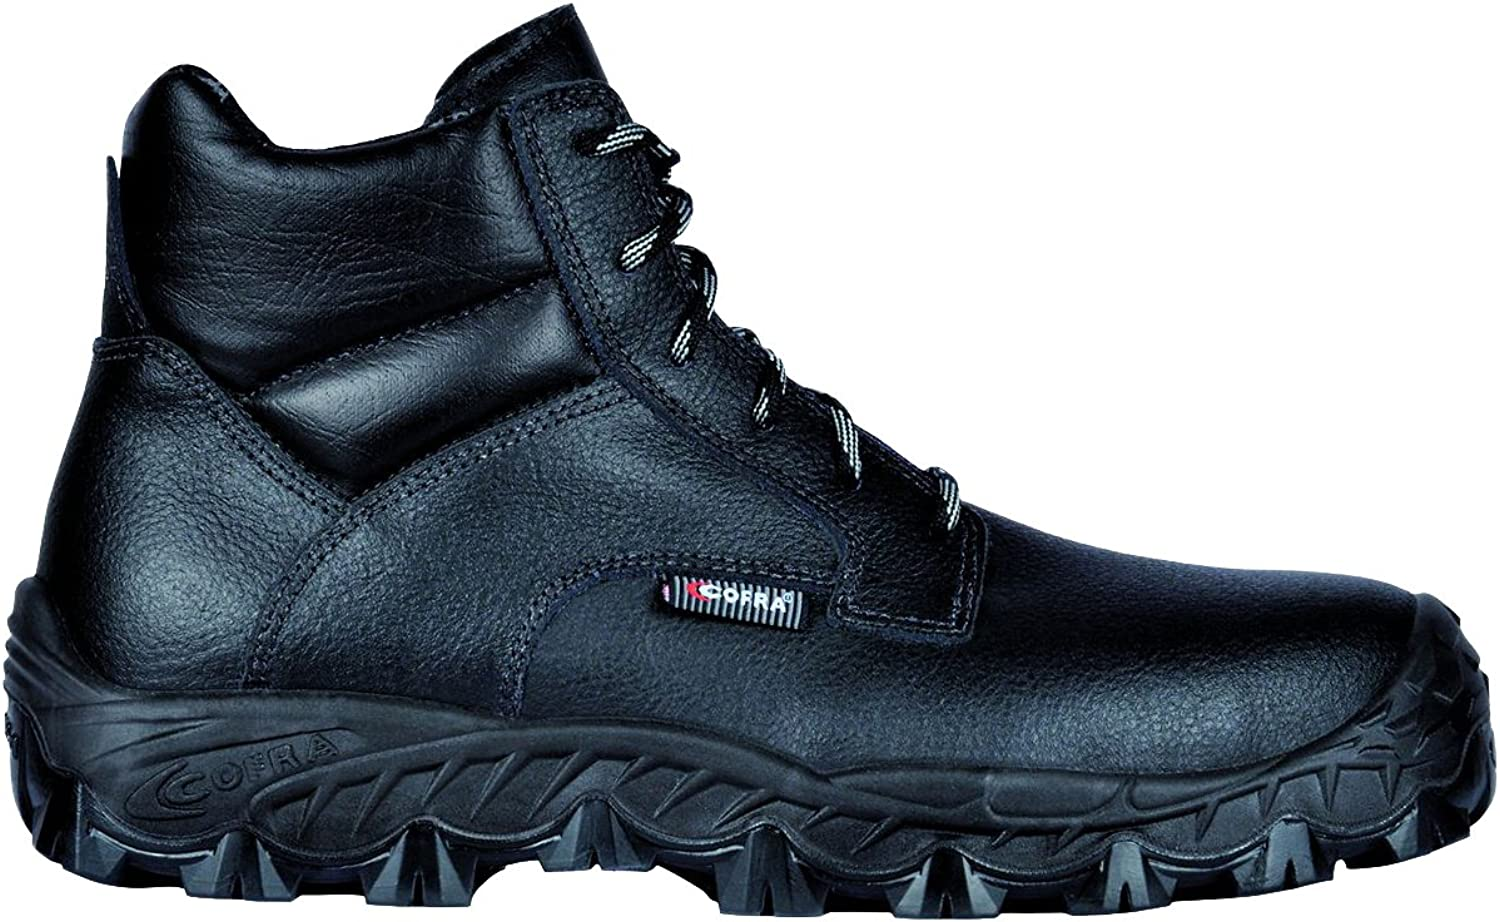 Cofra FW120-000.W43 Safety shoes New Baffin S3 SRC Size 43 in Black